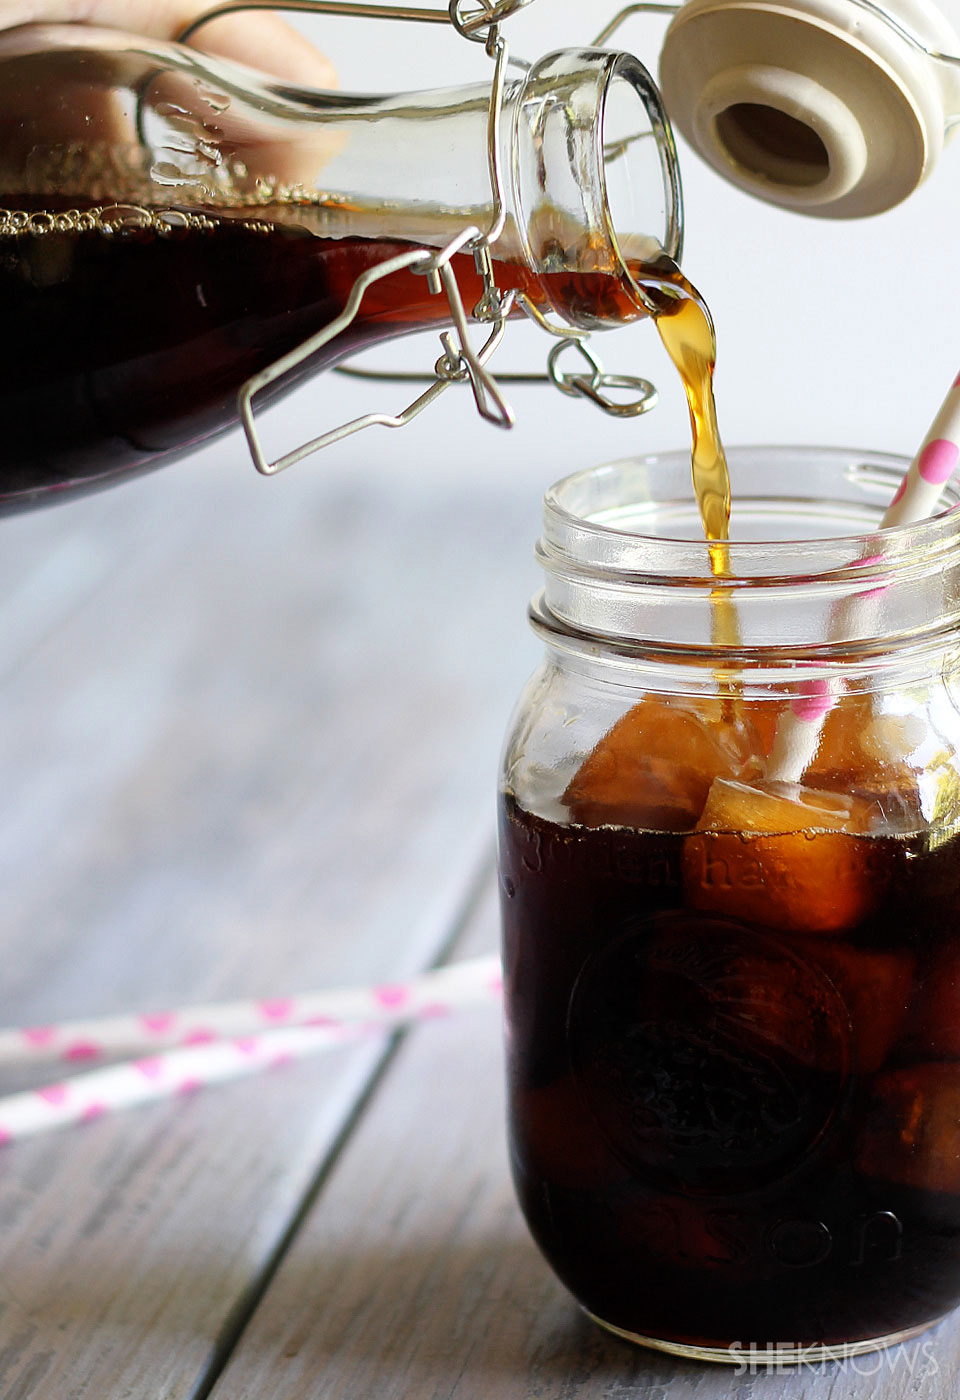 Make your own amazing iced coffee